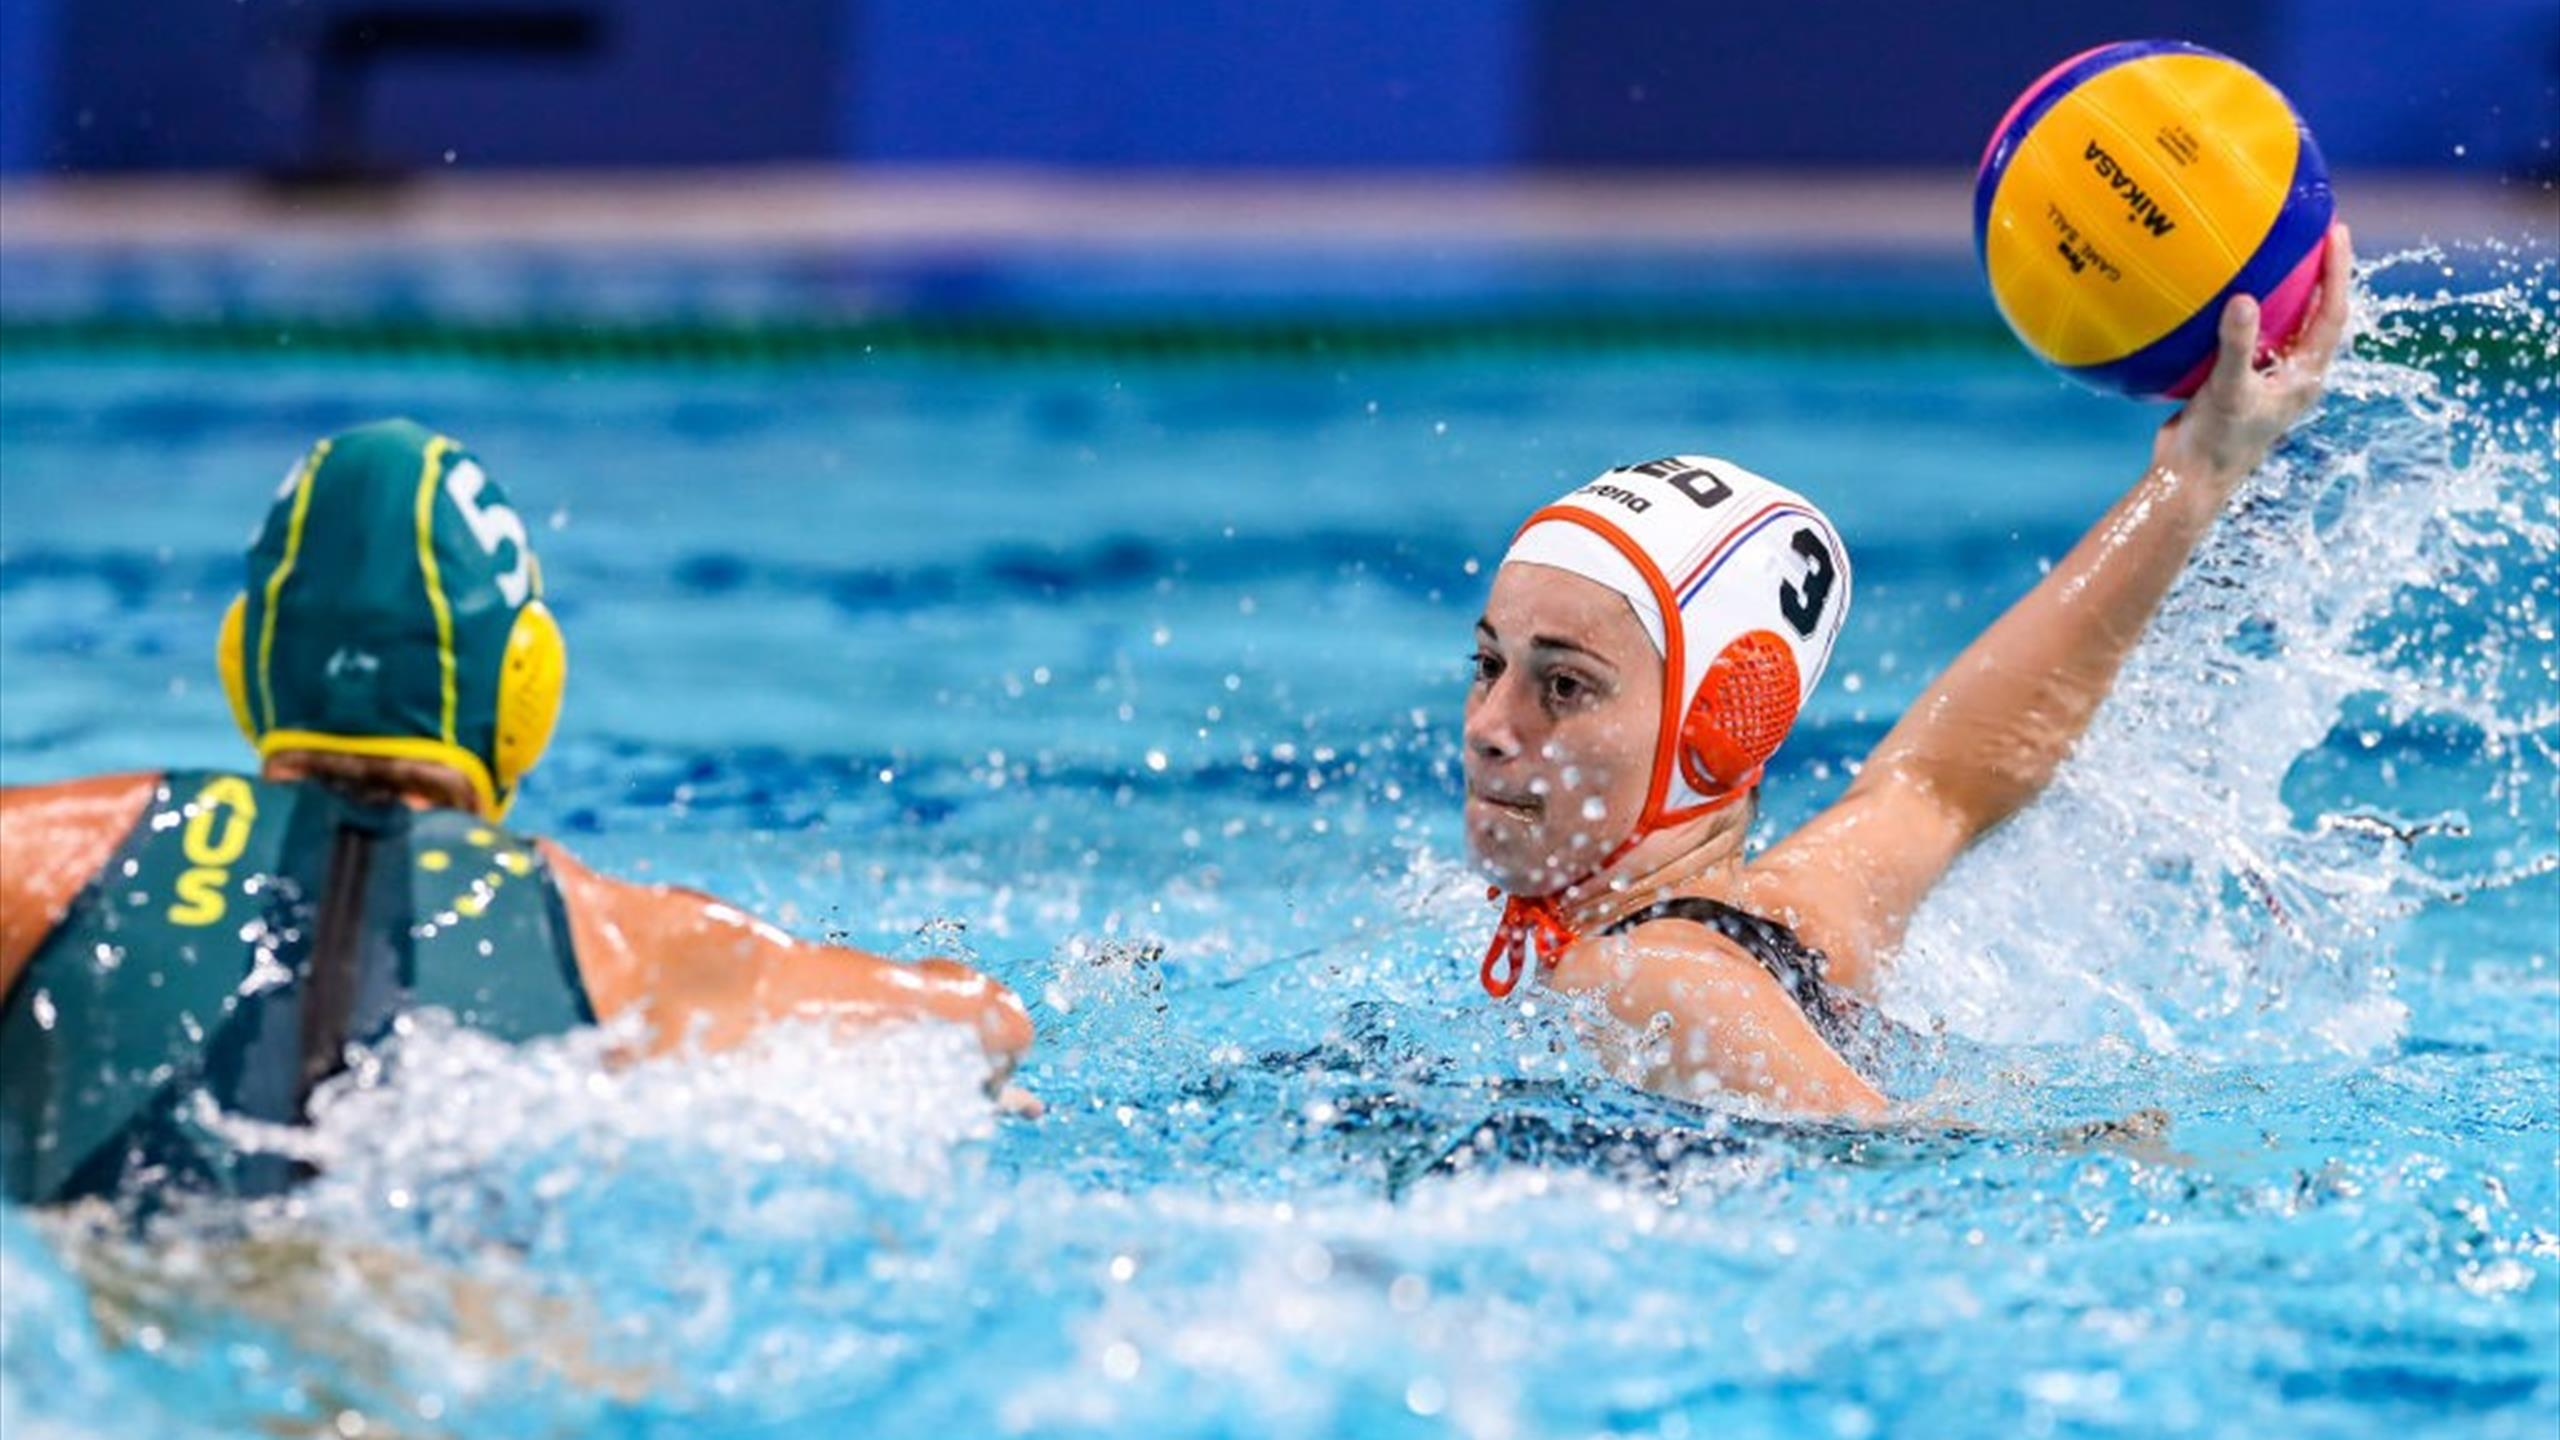 Tokyo 2020 |  Tears flow into the water after a losing duel for fifth place